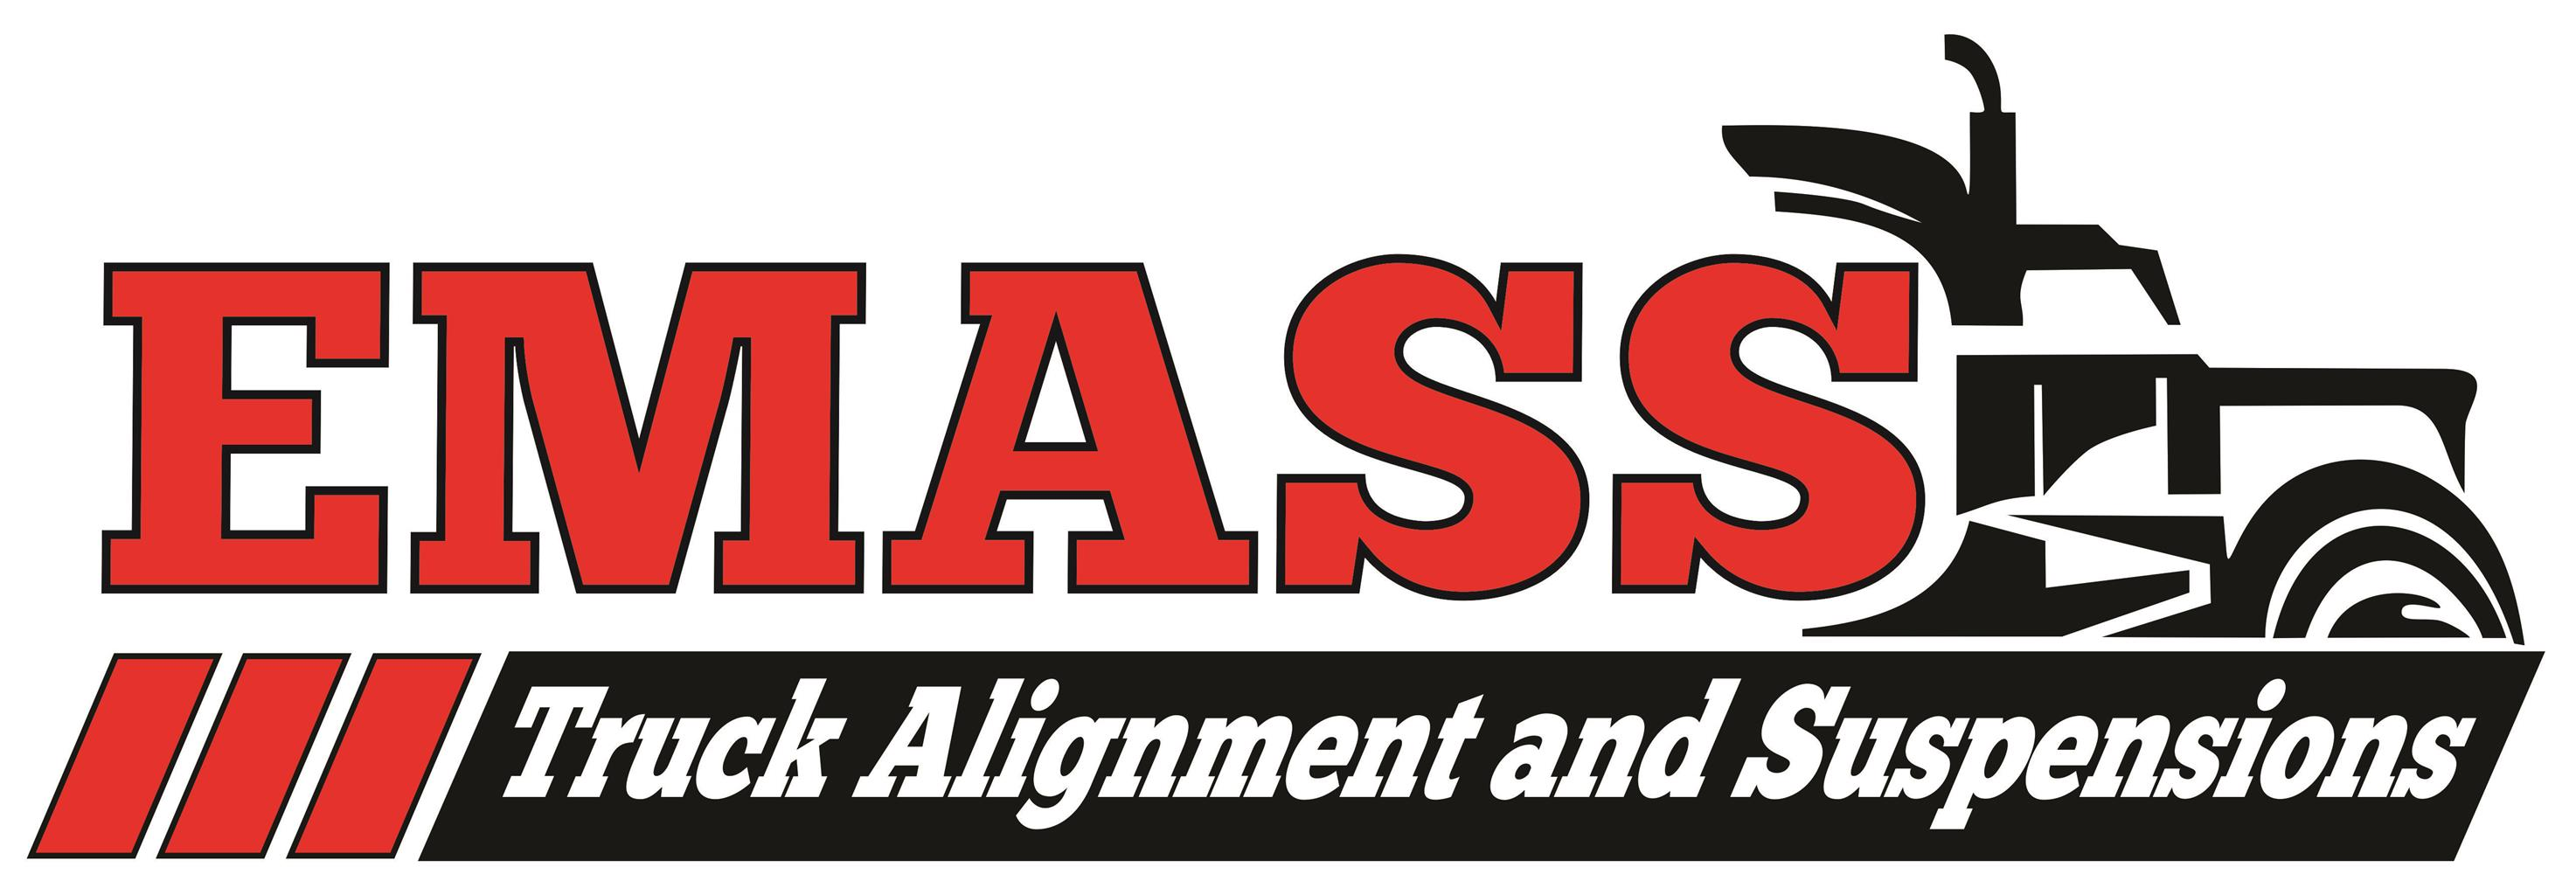 Truck / Bus / Trailer / Armored Vehicles Alignment and Suspension Services